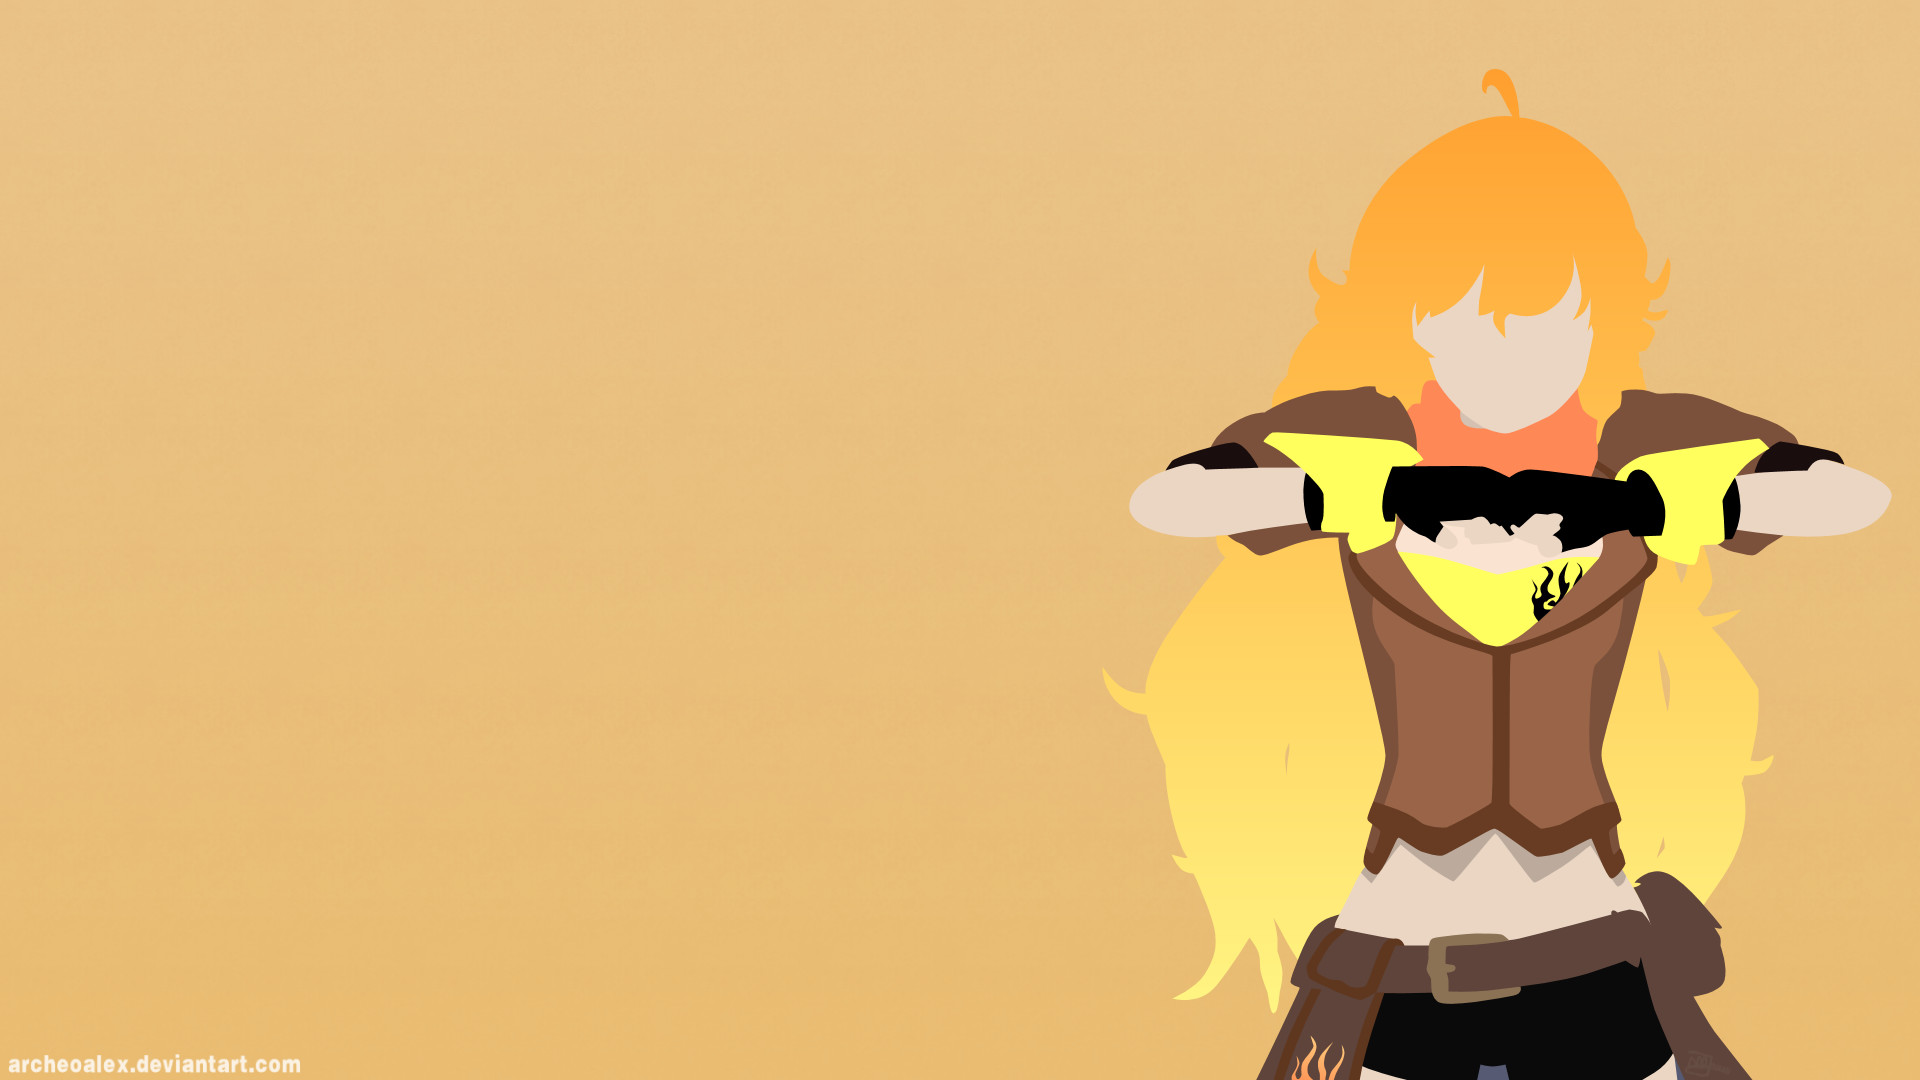 Res: 1920x1080, ... RWBY Yang Xiao Long (Minimalist Wallpaper) by ArcheoAlex